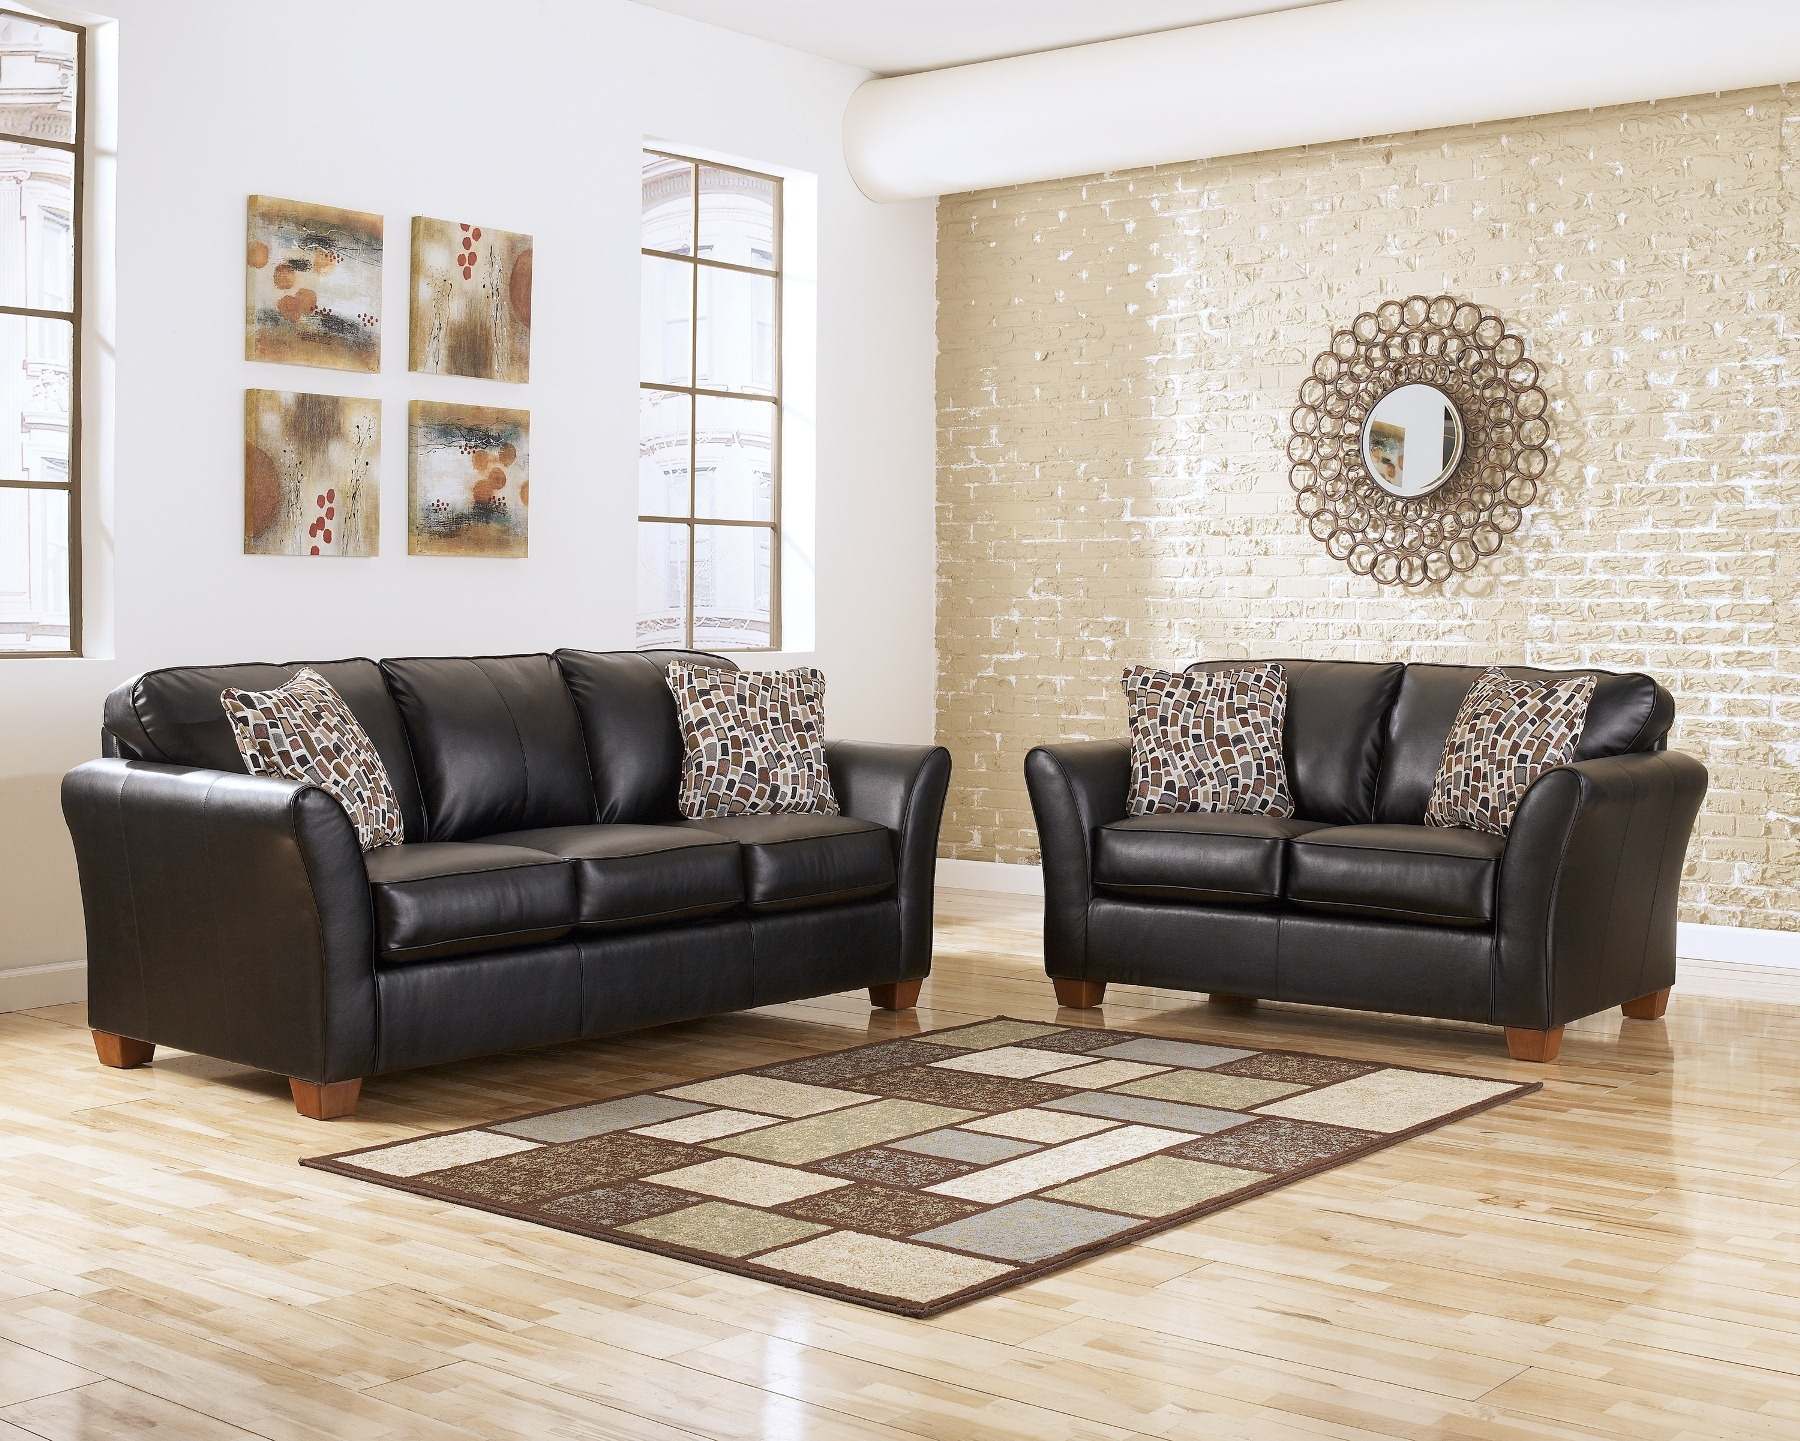 Sofas Center Unusual Big Lots Sofa Images Design Small Sectional For Big Sofa Chairs (Image 15 of 15)